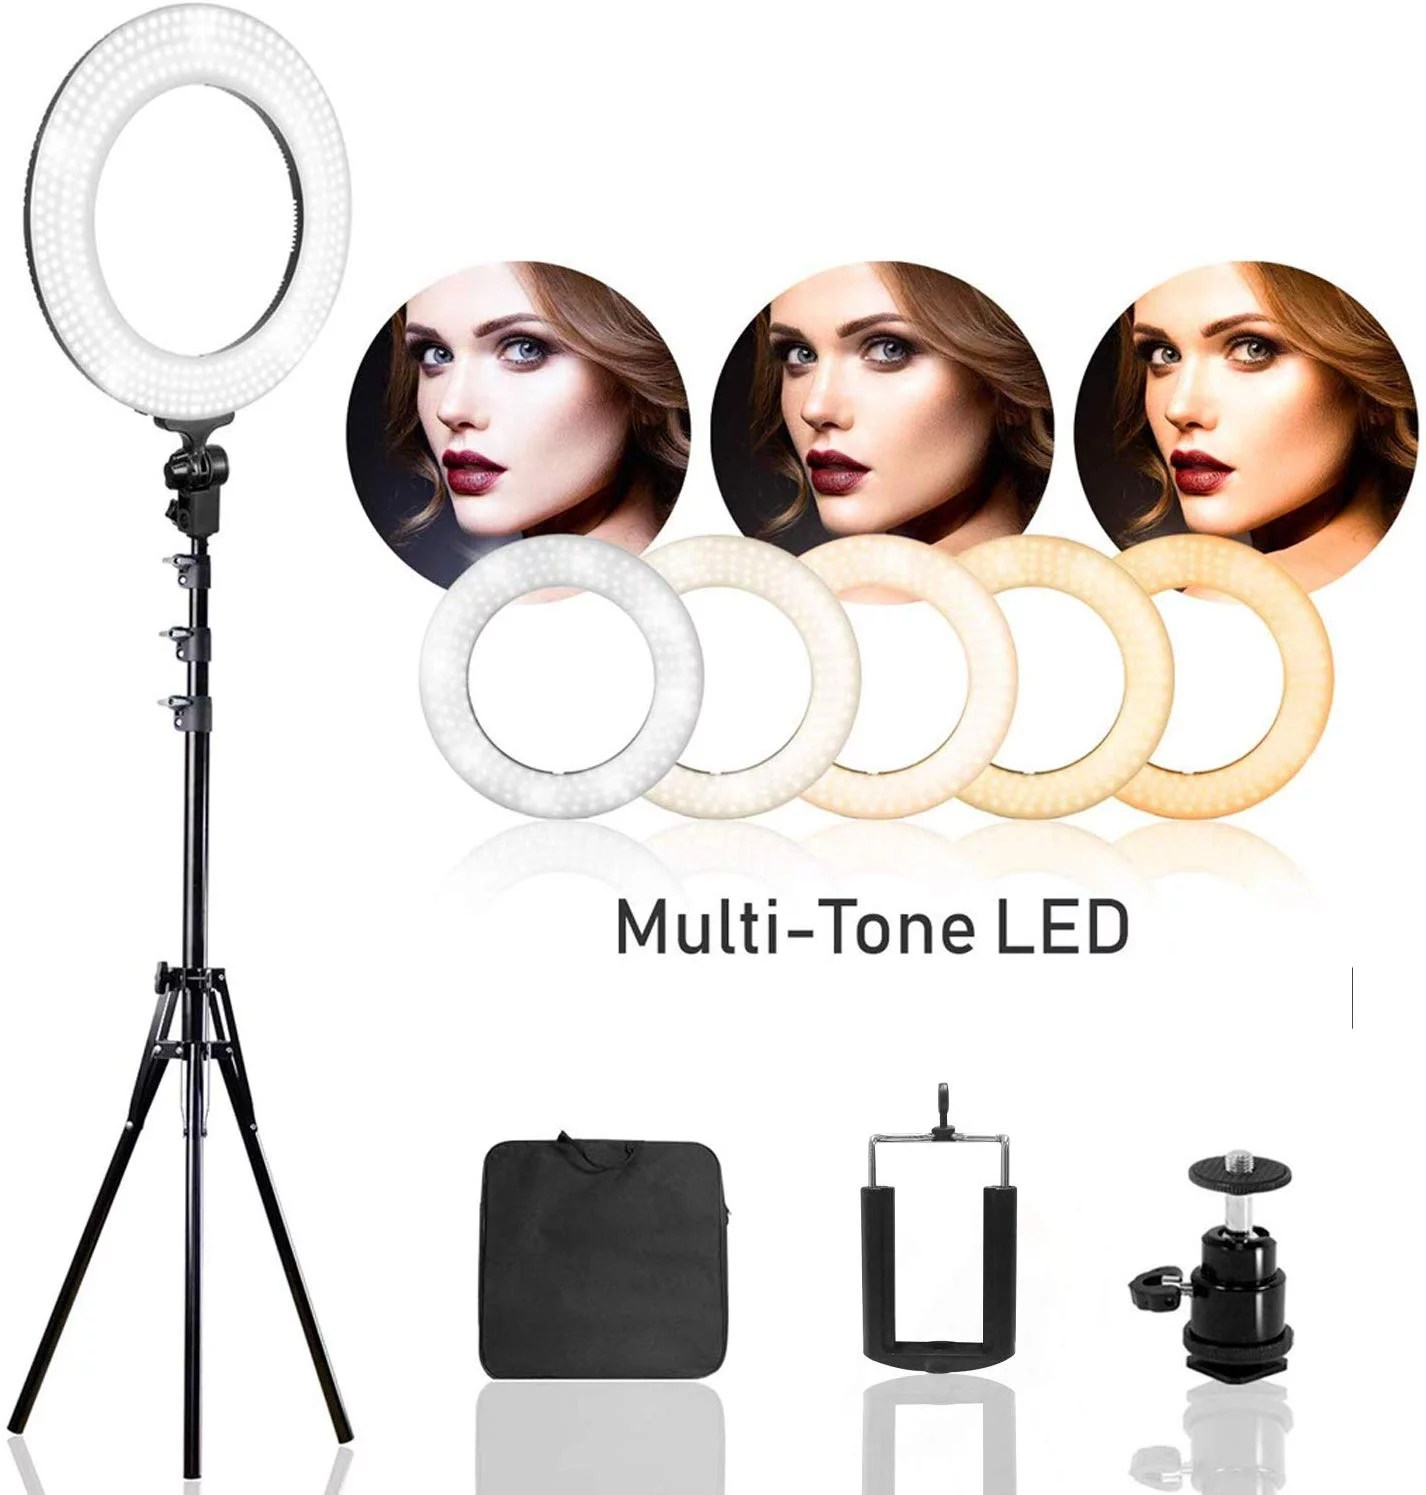 ls photography 14 dimmable dual colored led round ring light continuous lighting kit for beauty facial shoot light stand tripod cell phone holder